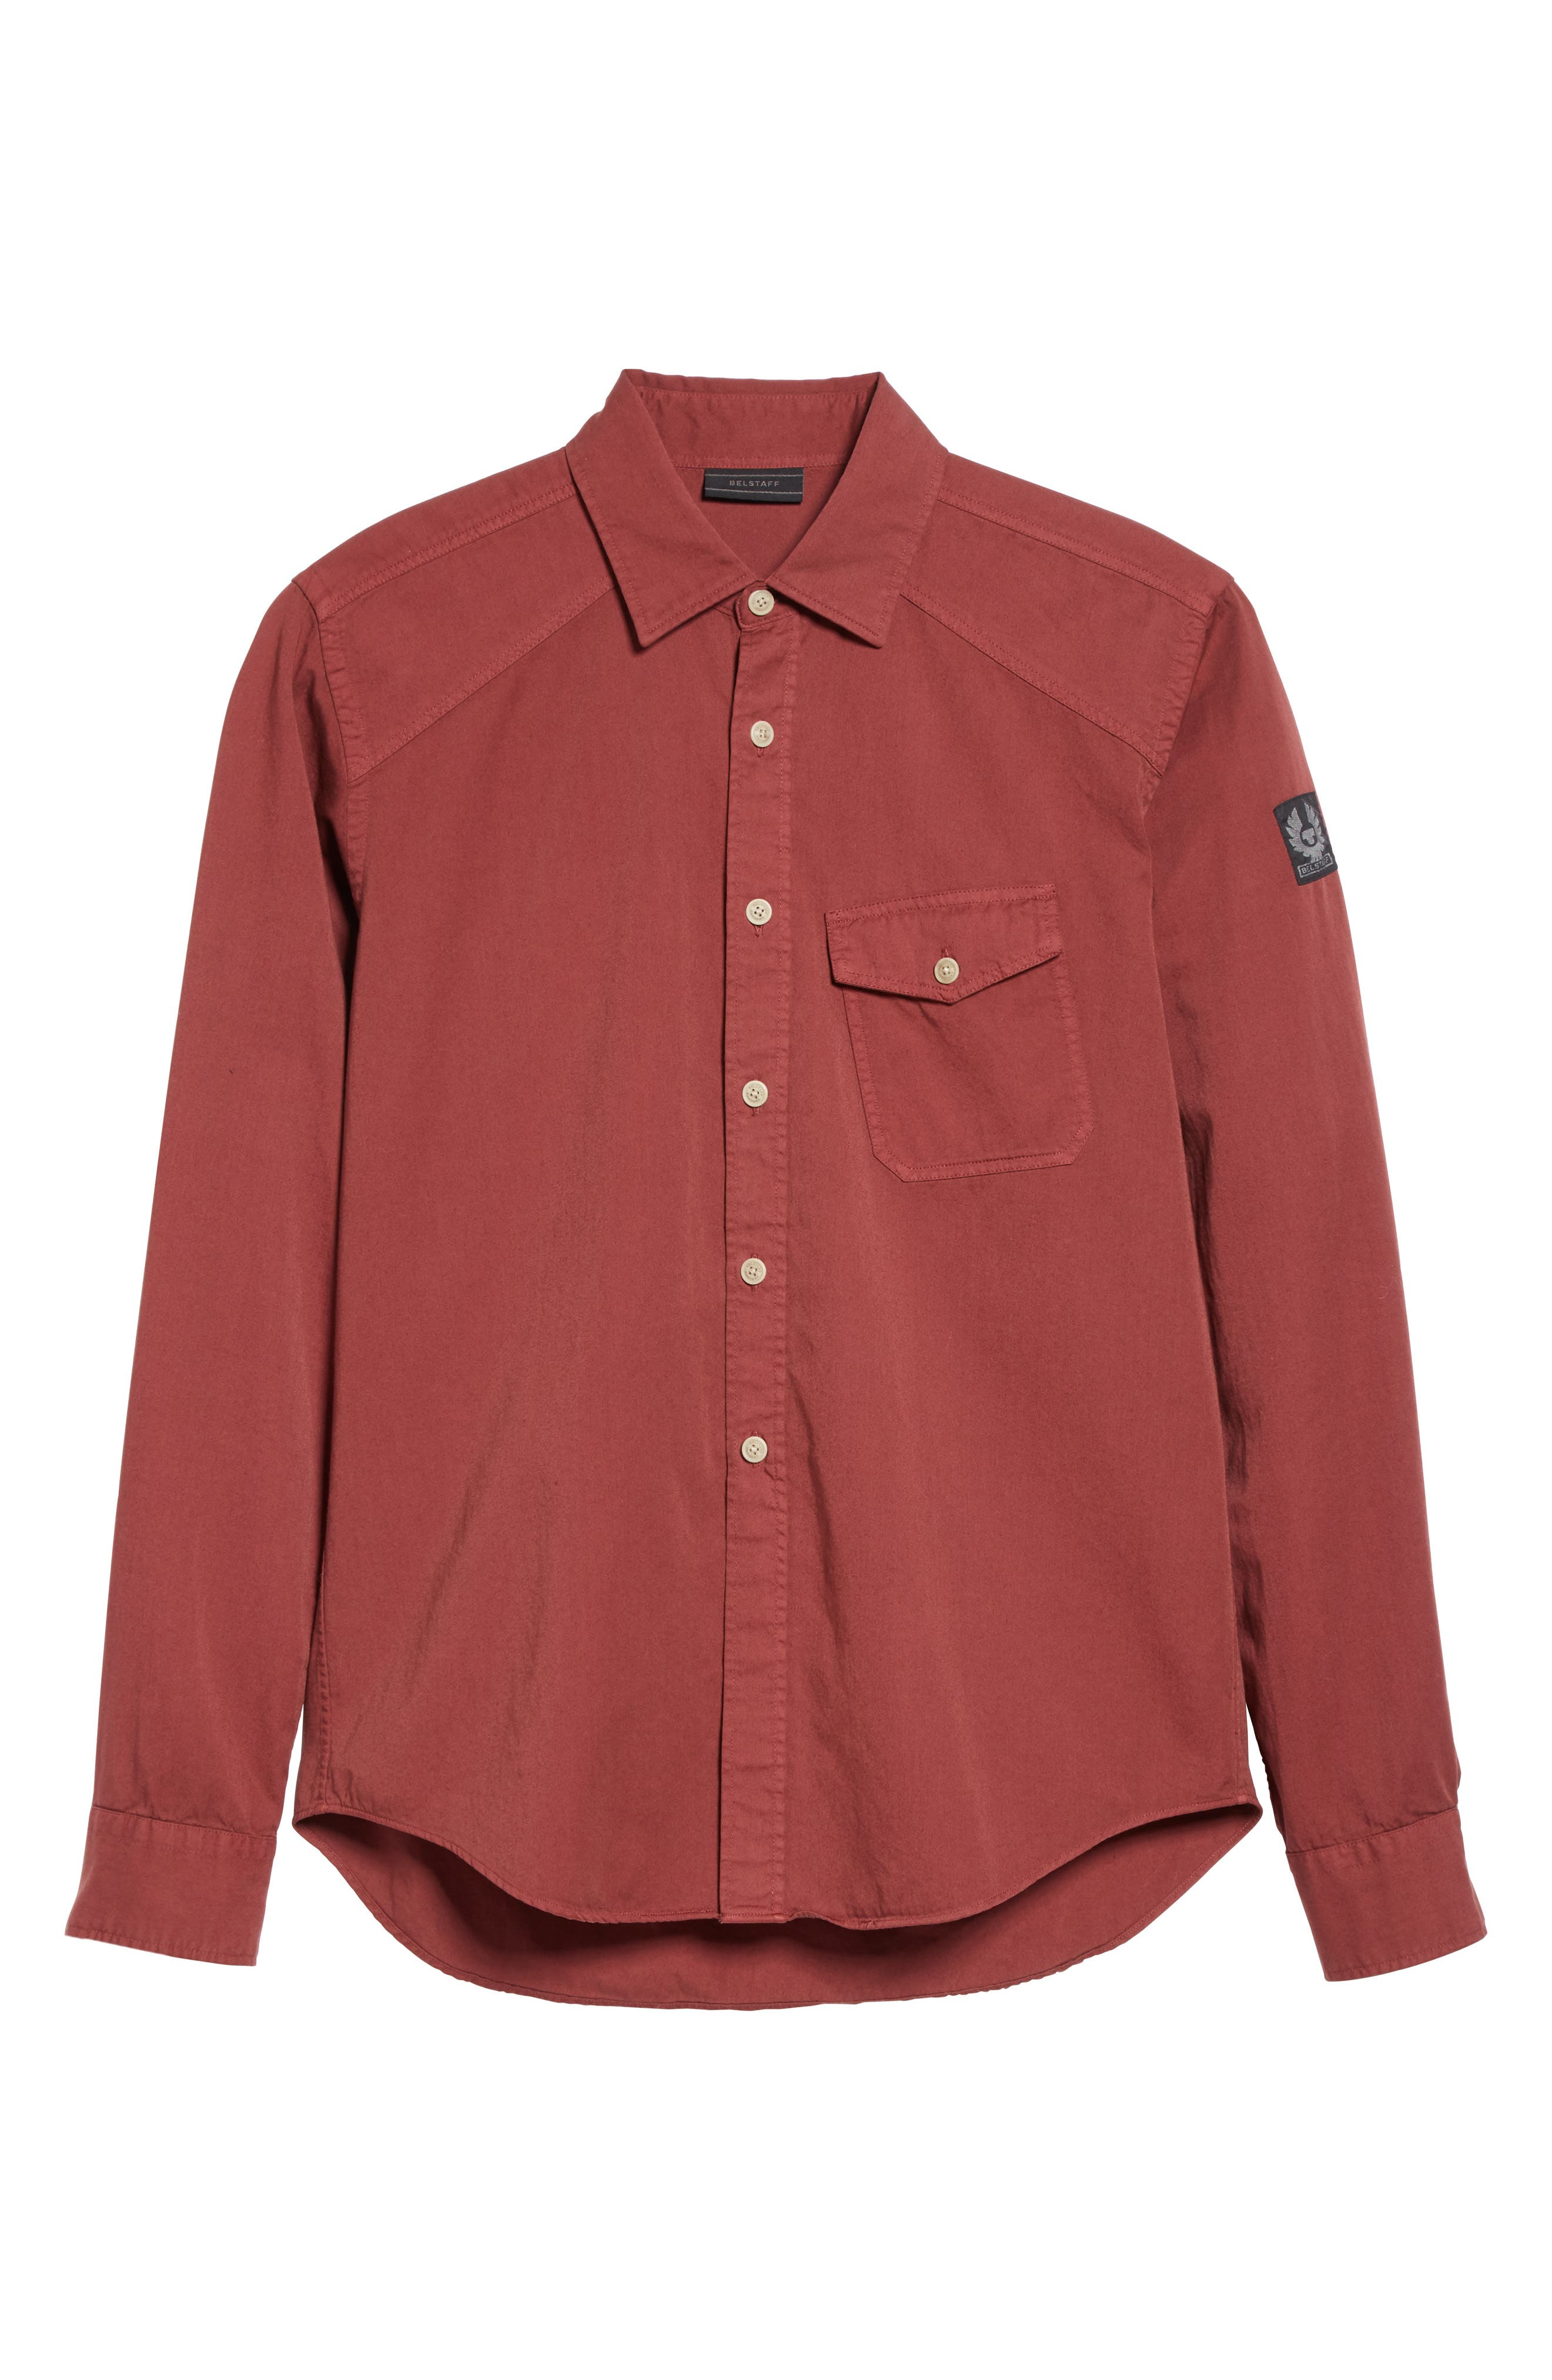 Steadway Extra Slim Fit Sport Shirt,                             Alternate thumbnail 29, color,